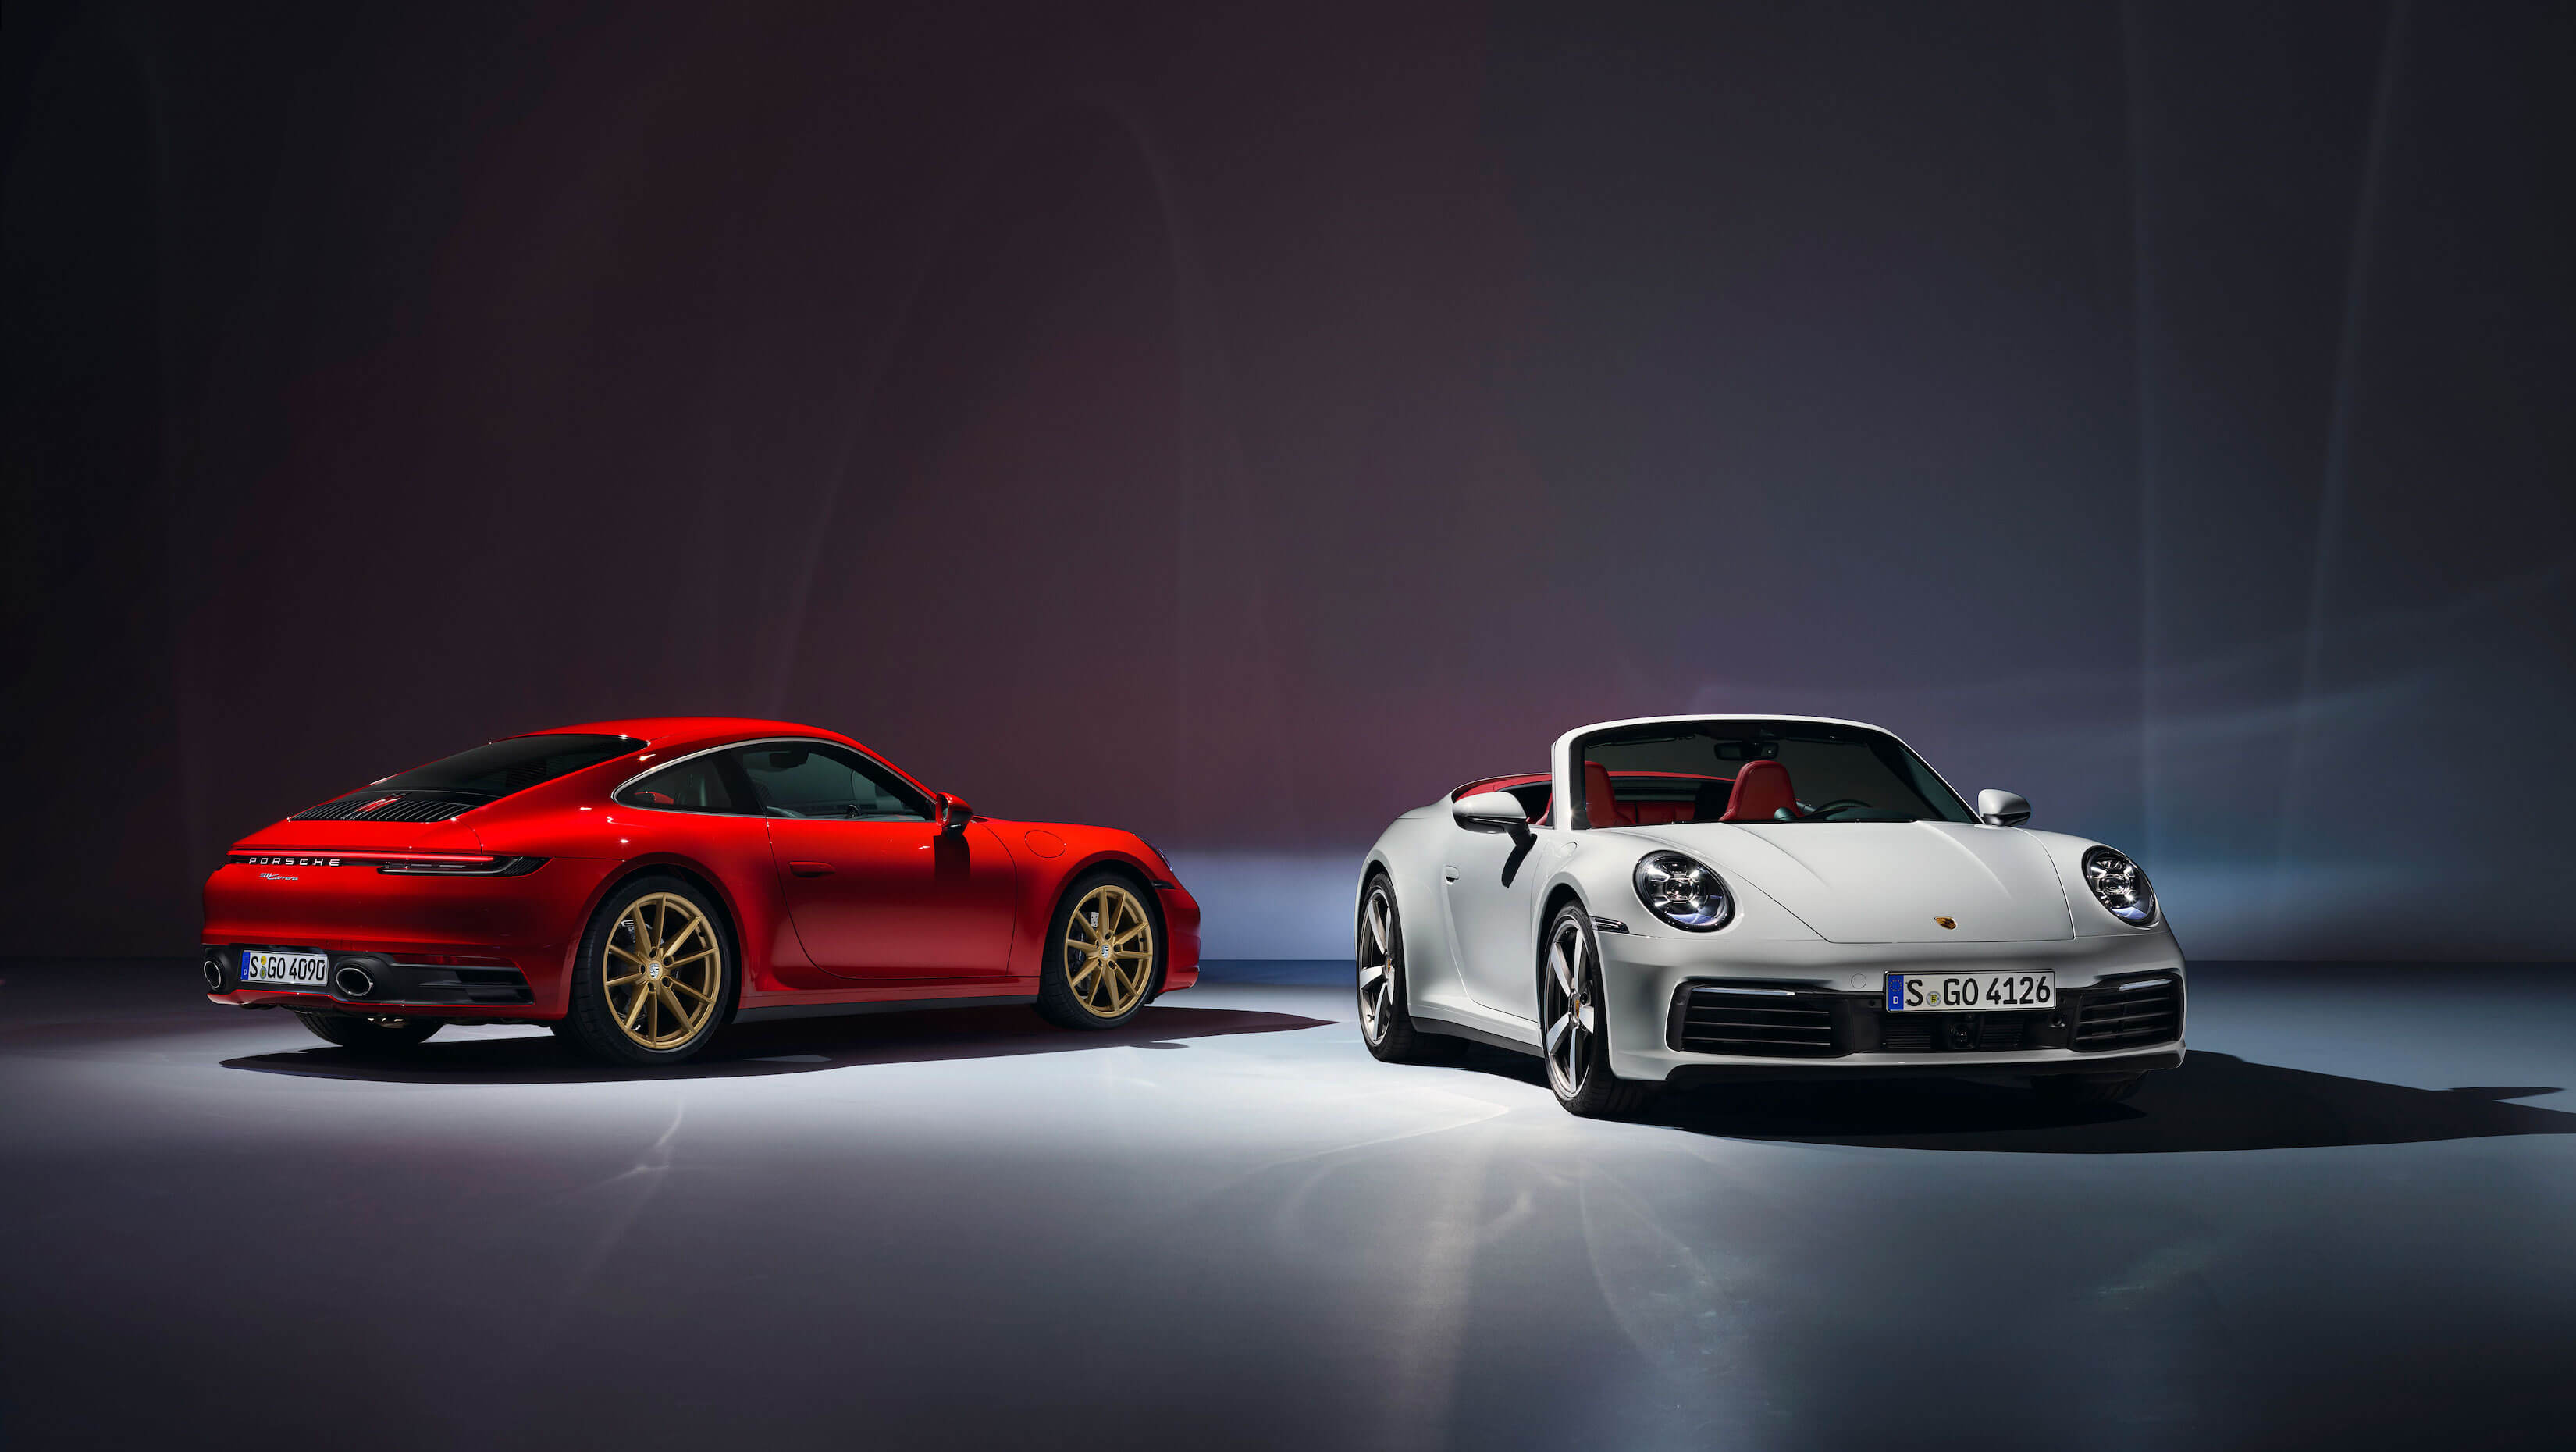 Porsche 911 Carrera Cabriolet and Coupe